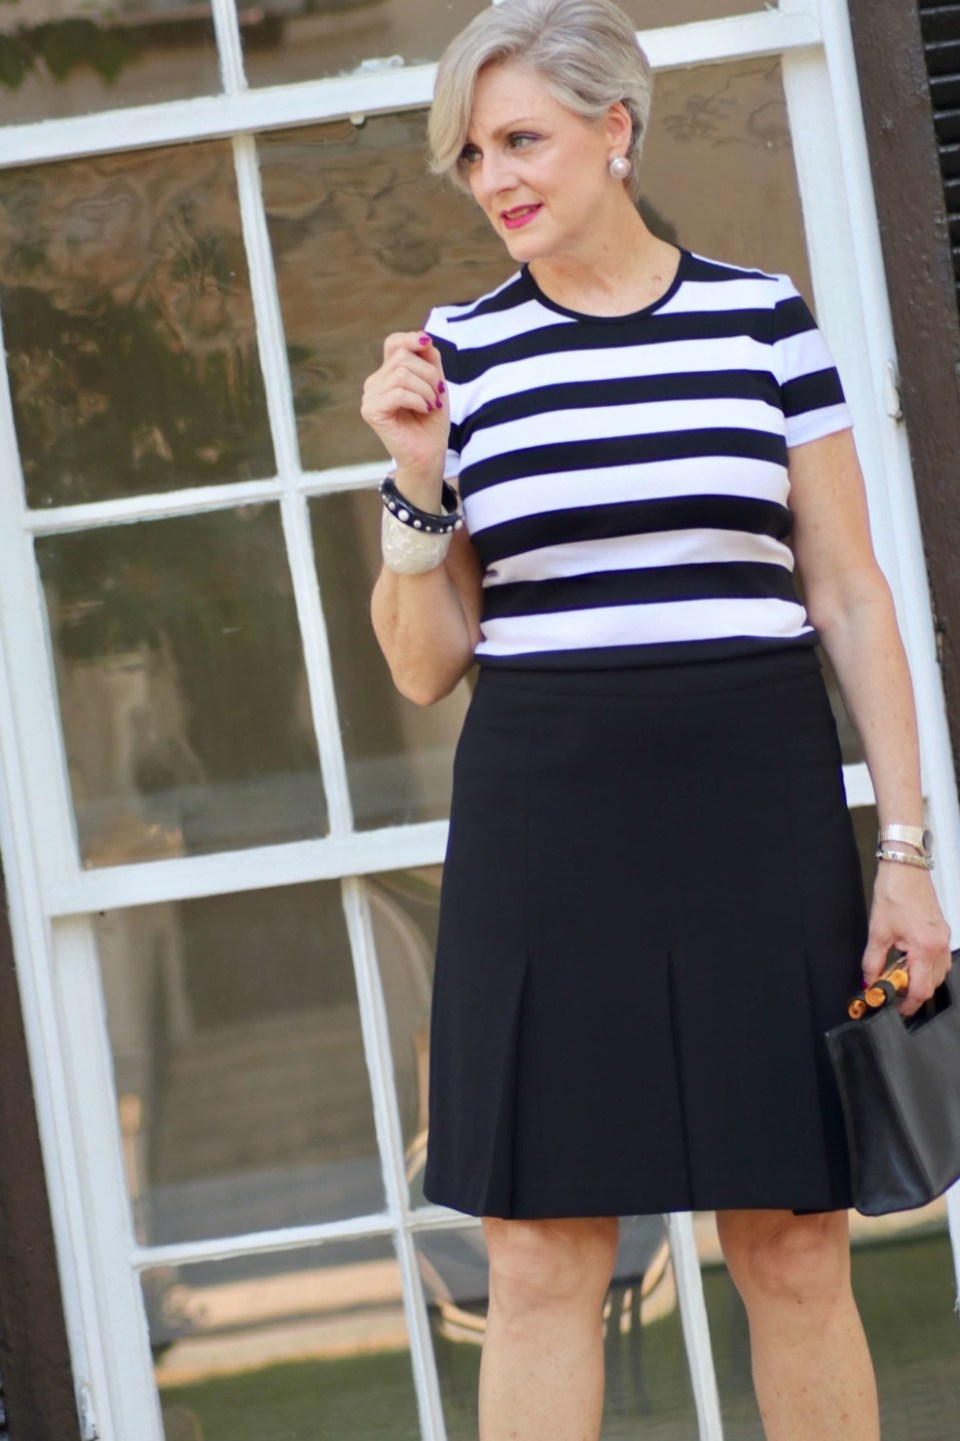 beth from Style at a Certain Age wears a black and white tee, black a-line skirt, pointy toed flats and black handbag